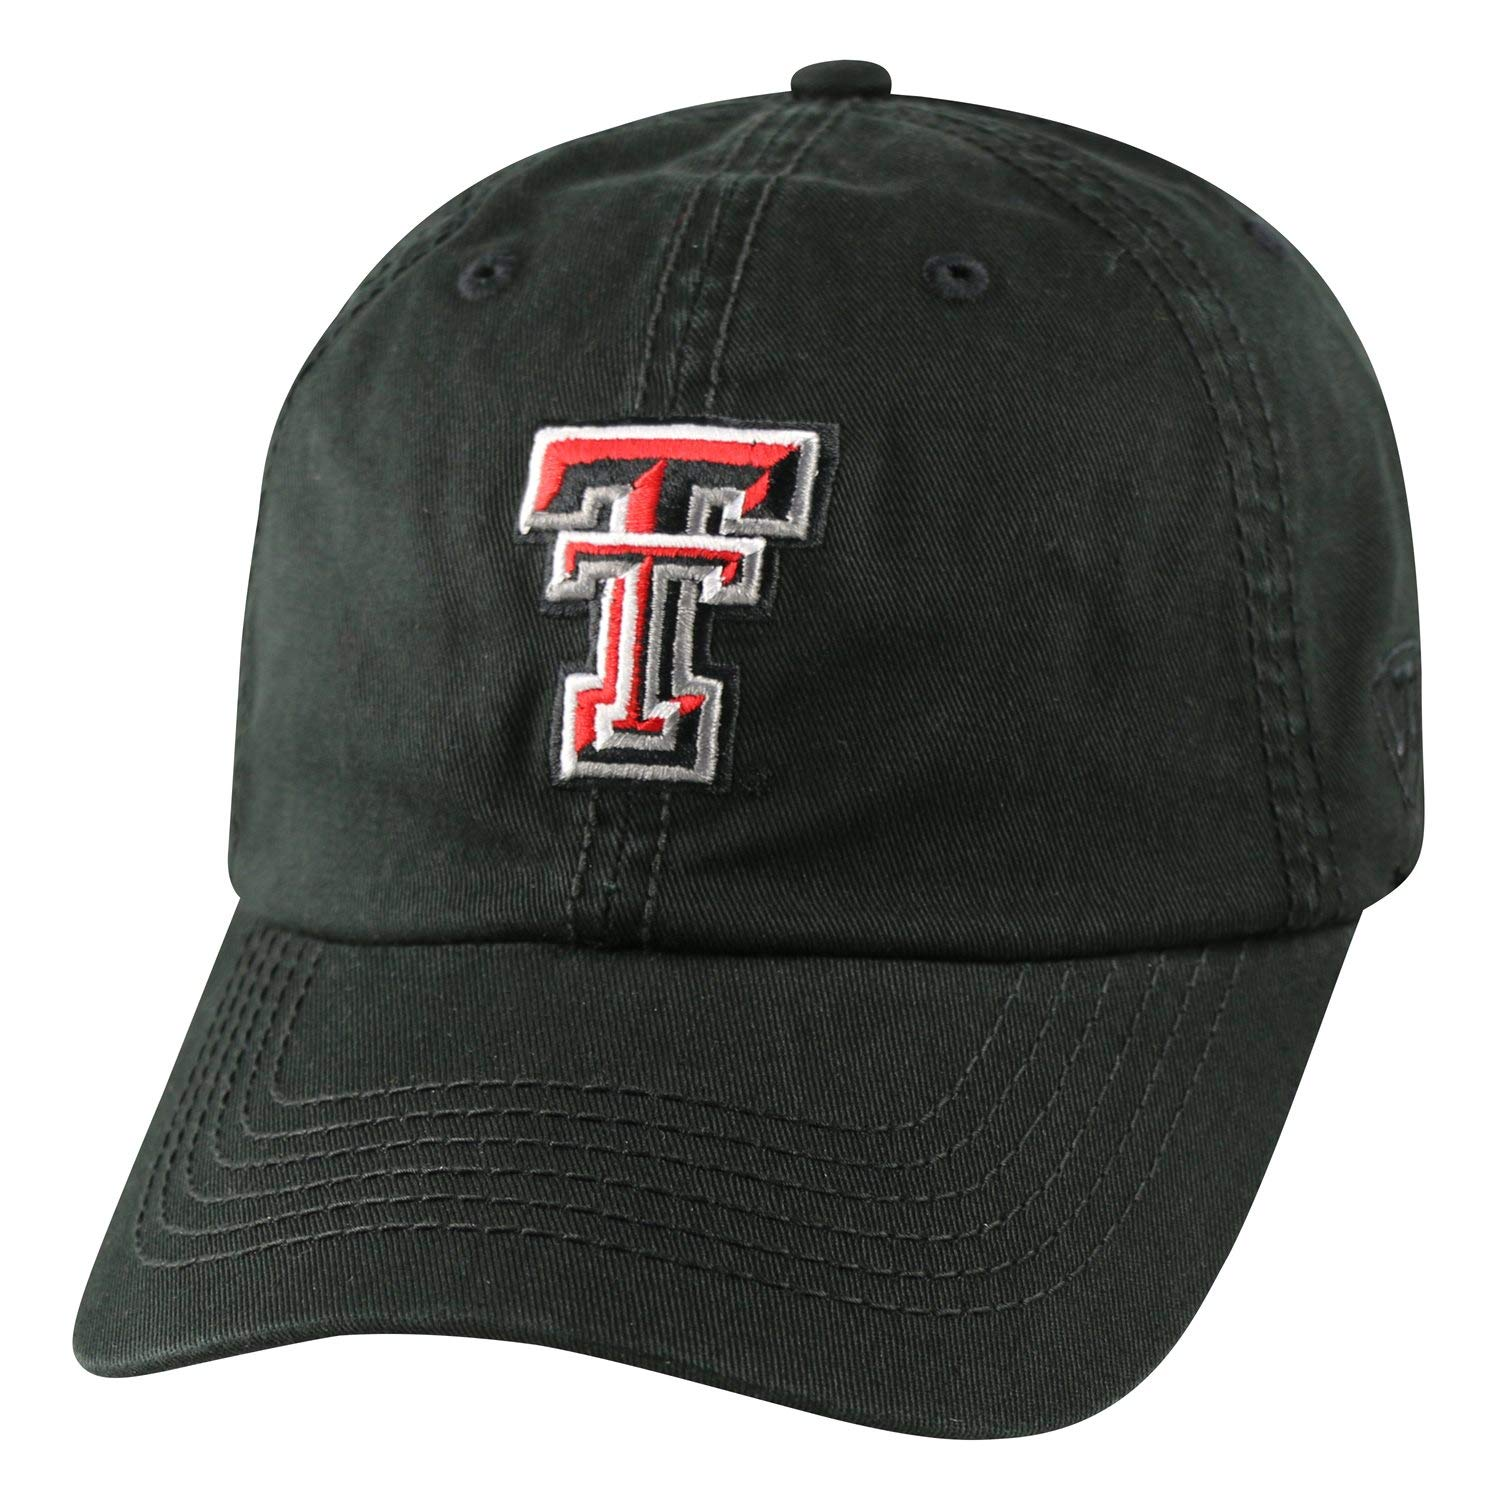 on sale 189e6 6c7b4 Amazon.com   Texas Tech Hat Red Raiders NCAA Top of the World Crew  Adjustable Relaxed Fit Cap Black   Baseball Caps   Sports   Outdoors